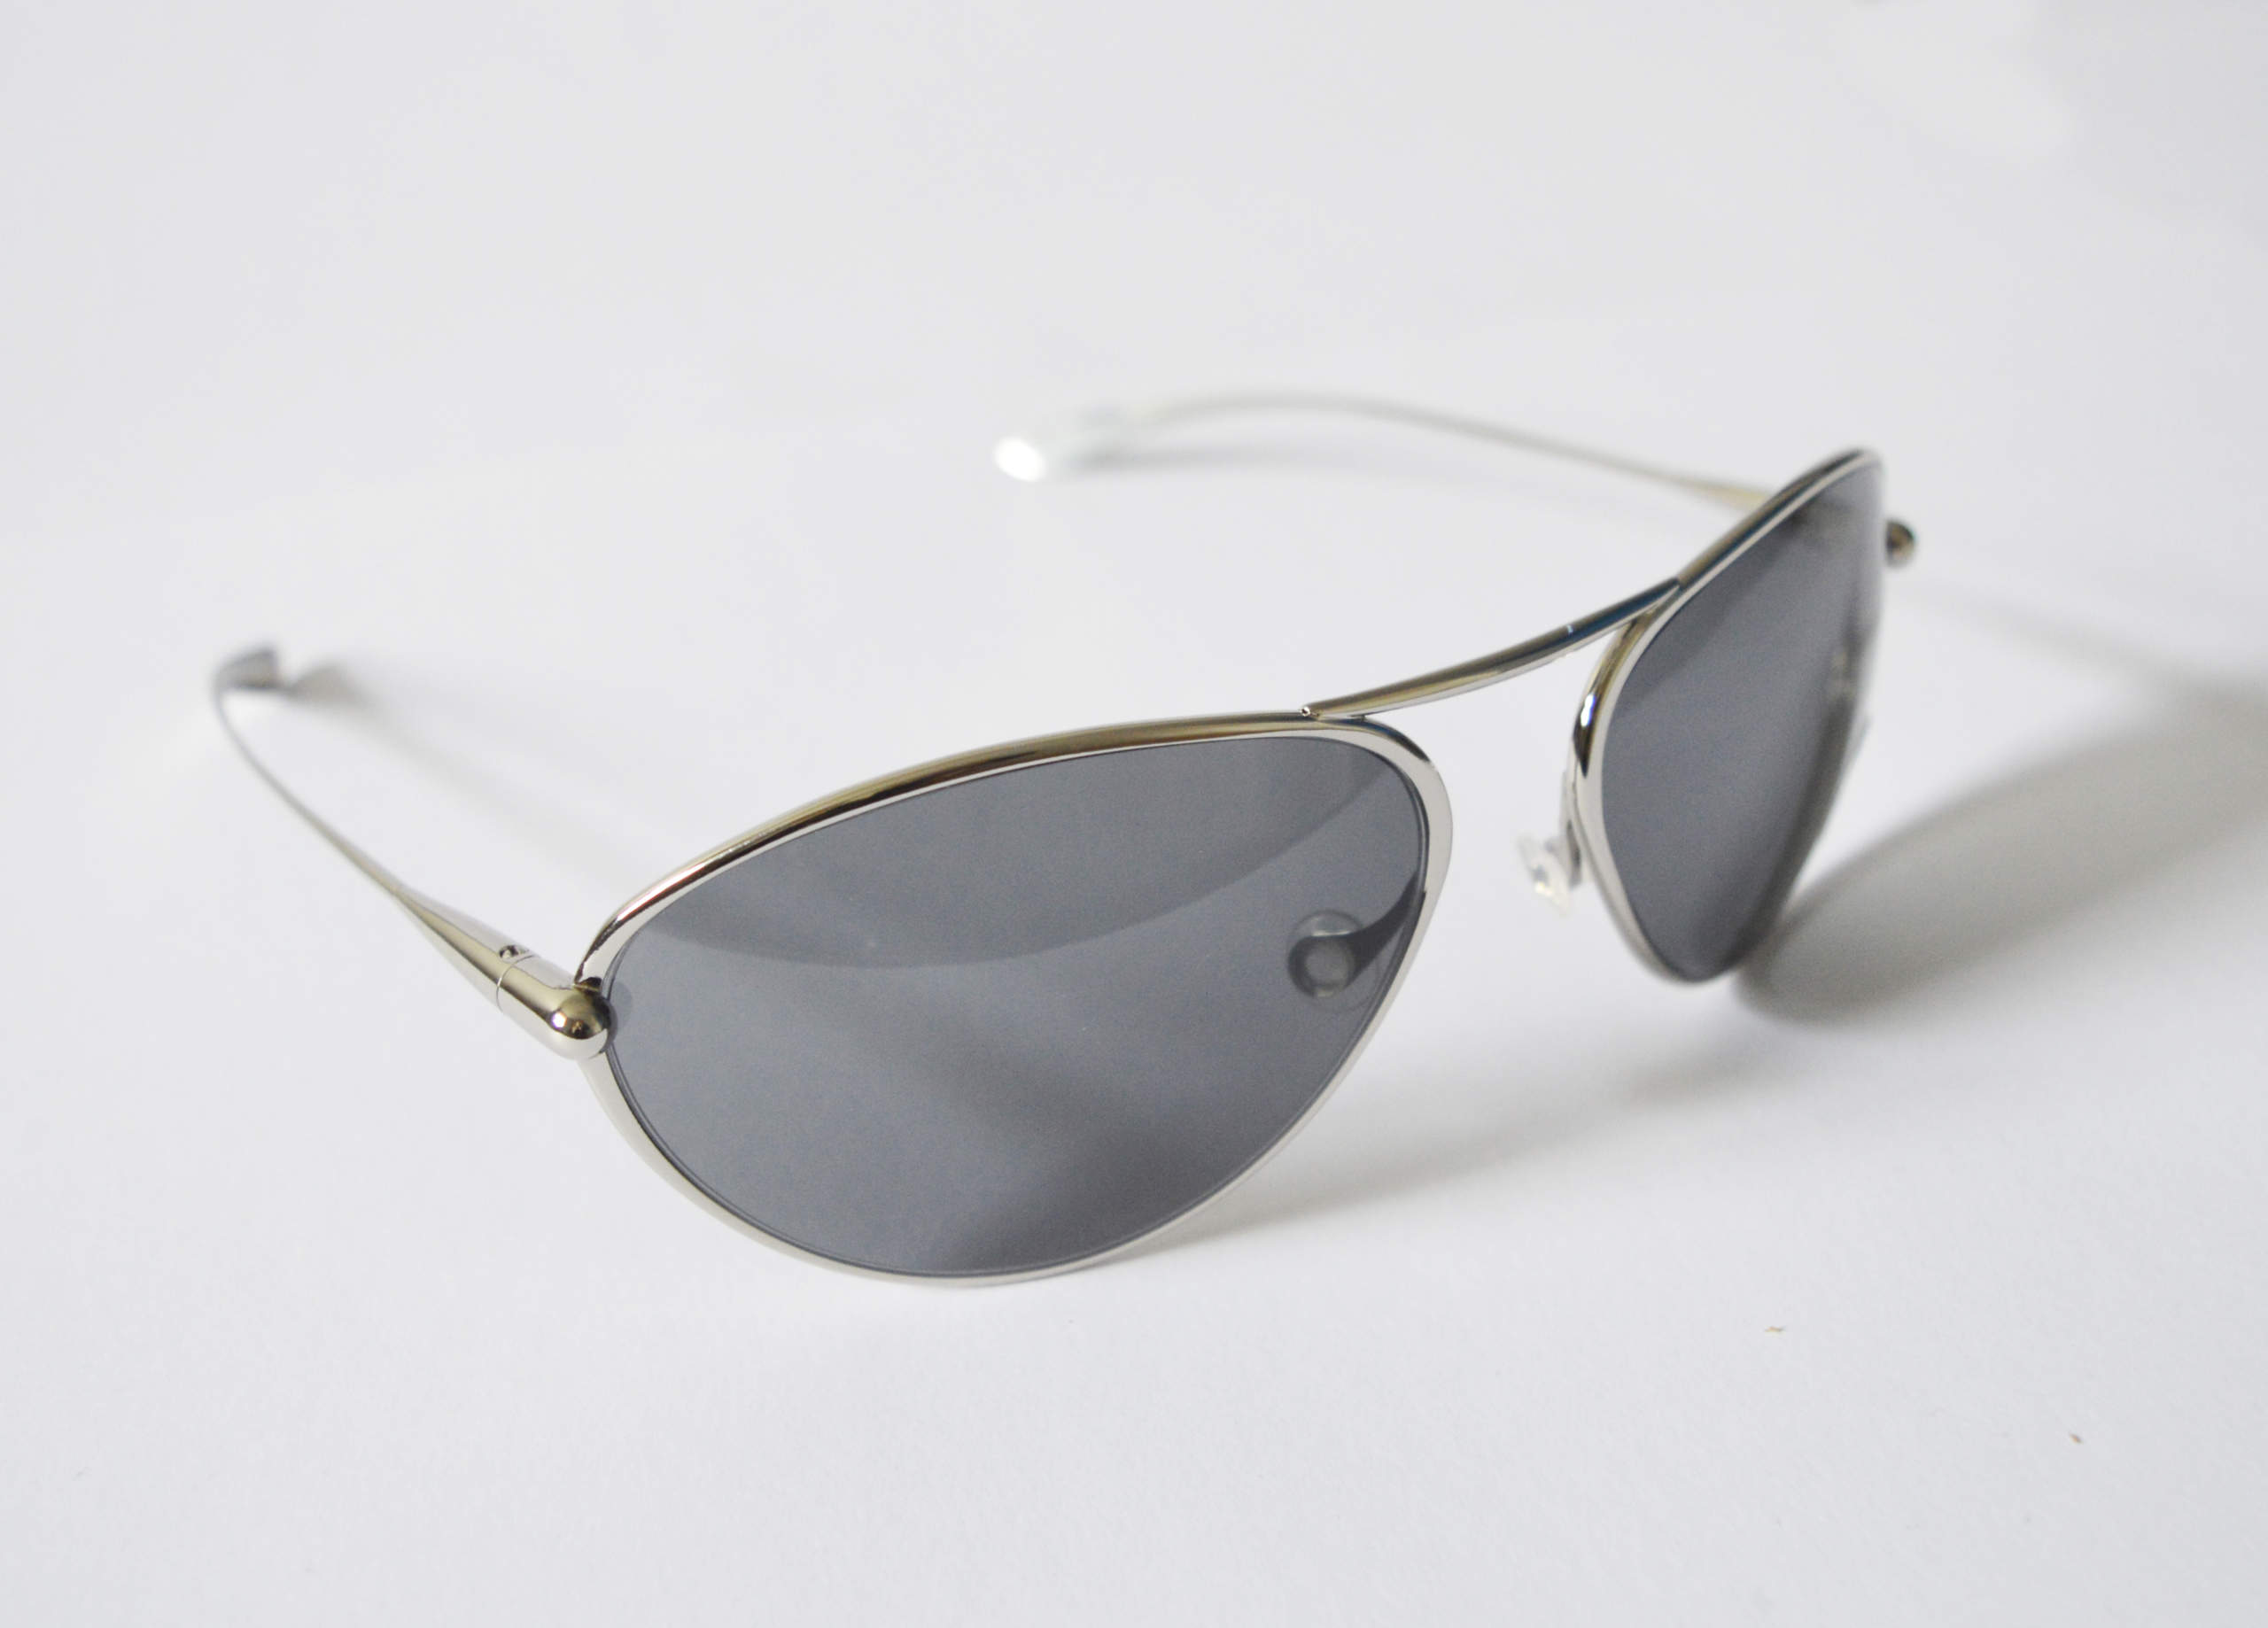 Tropo - Polished Titanium Frame High-Contrast Sunglasses